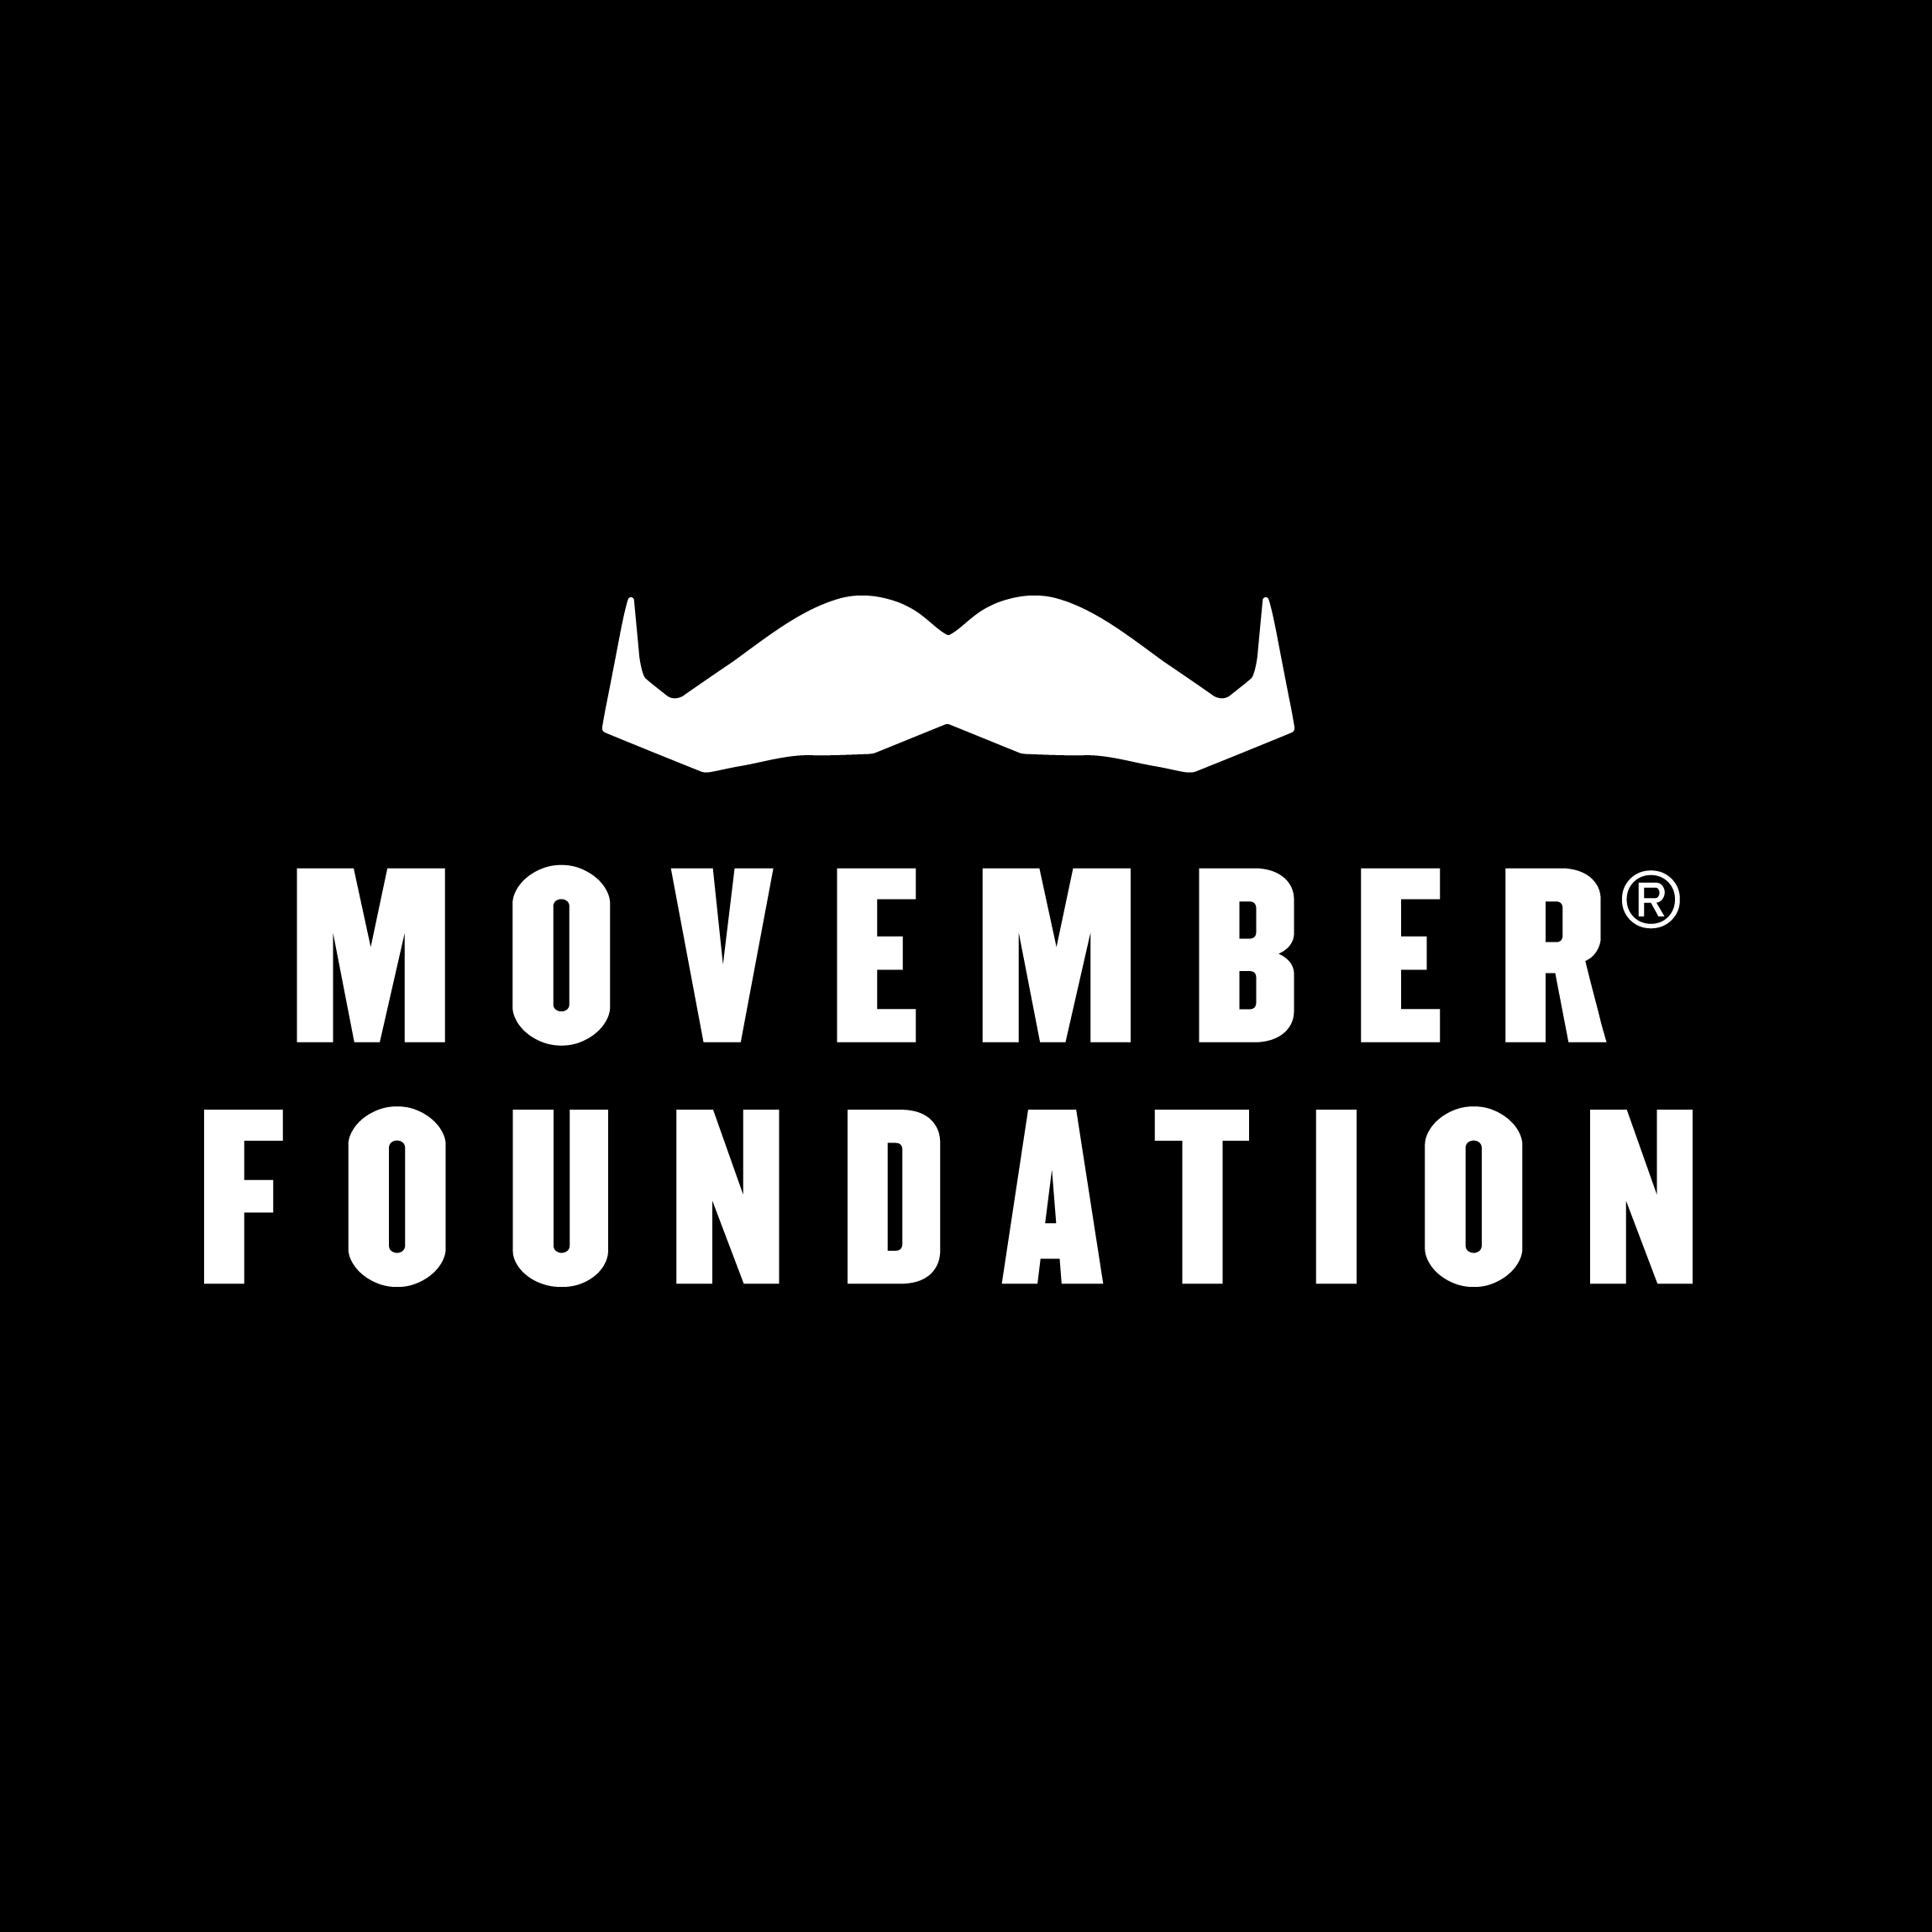 The lads get to grow a moustache during November and raise funds for men's health.